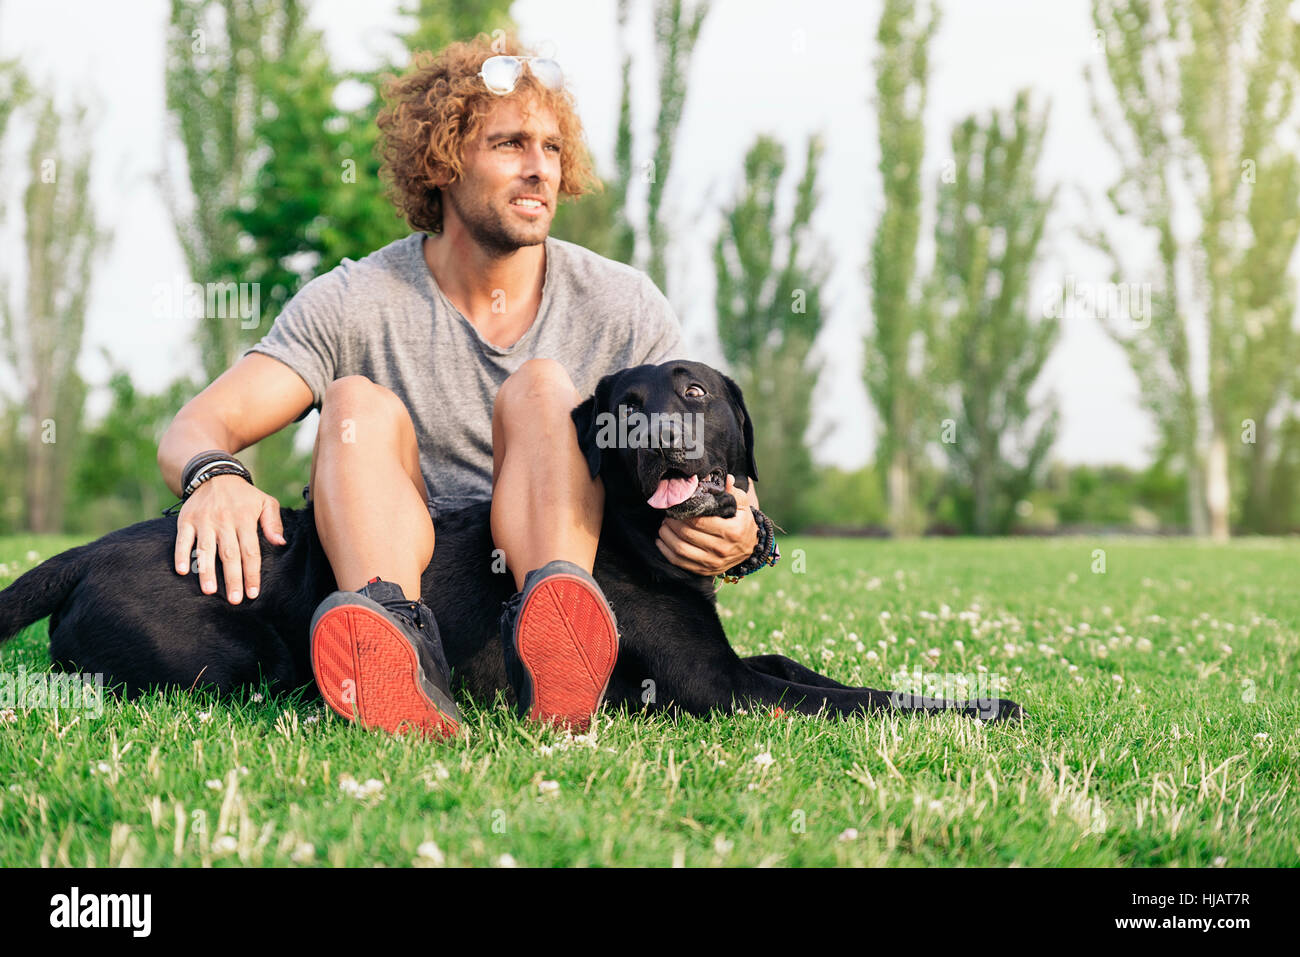 Man having fun and playing with his dog in the park. - Stock Image